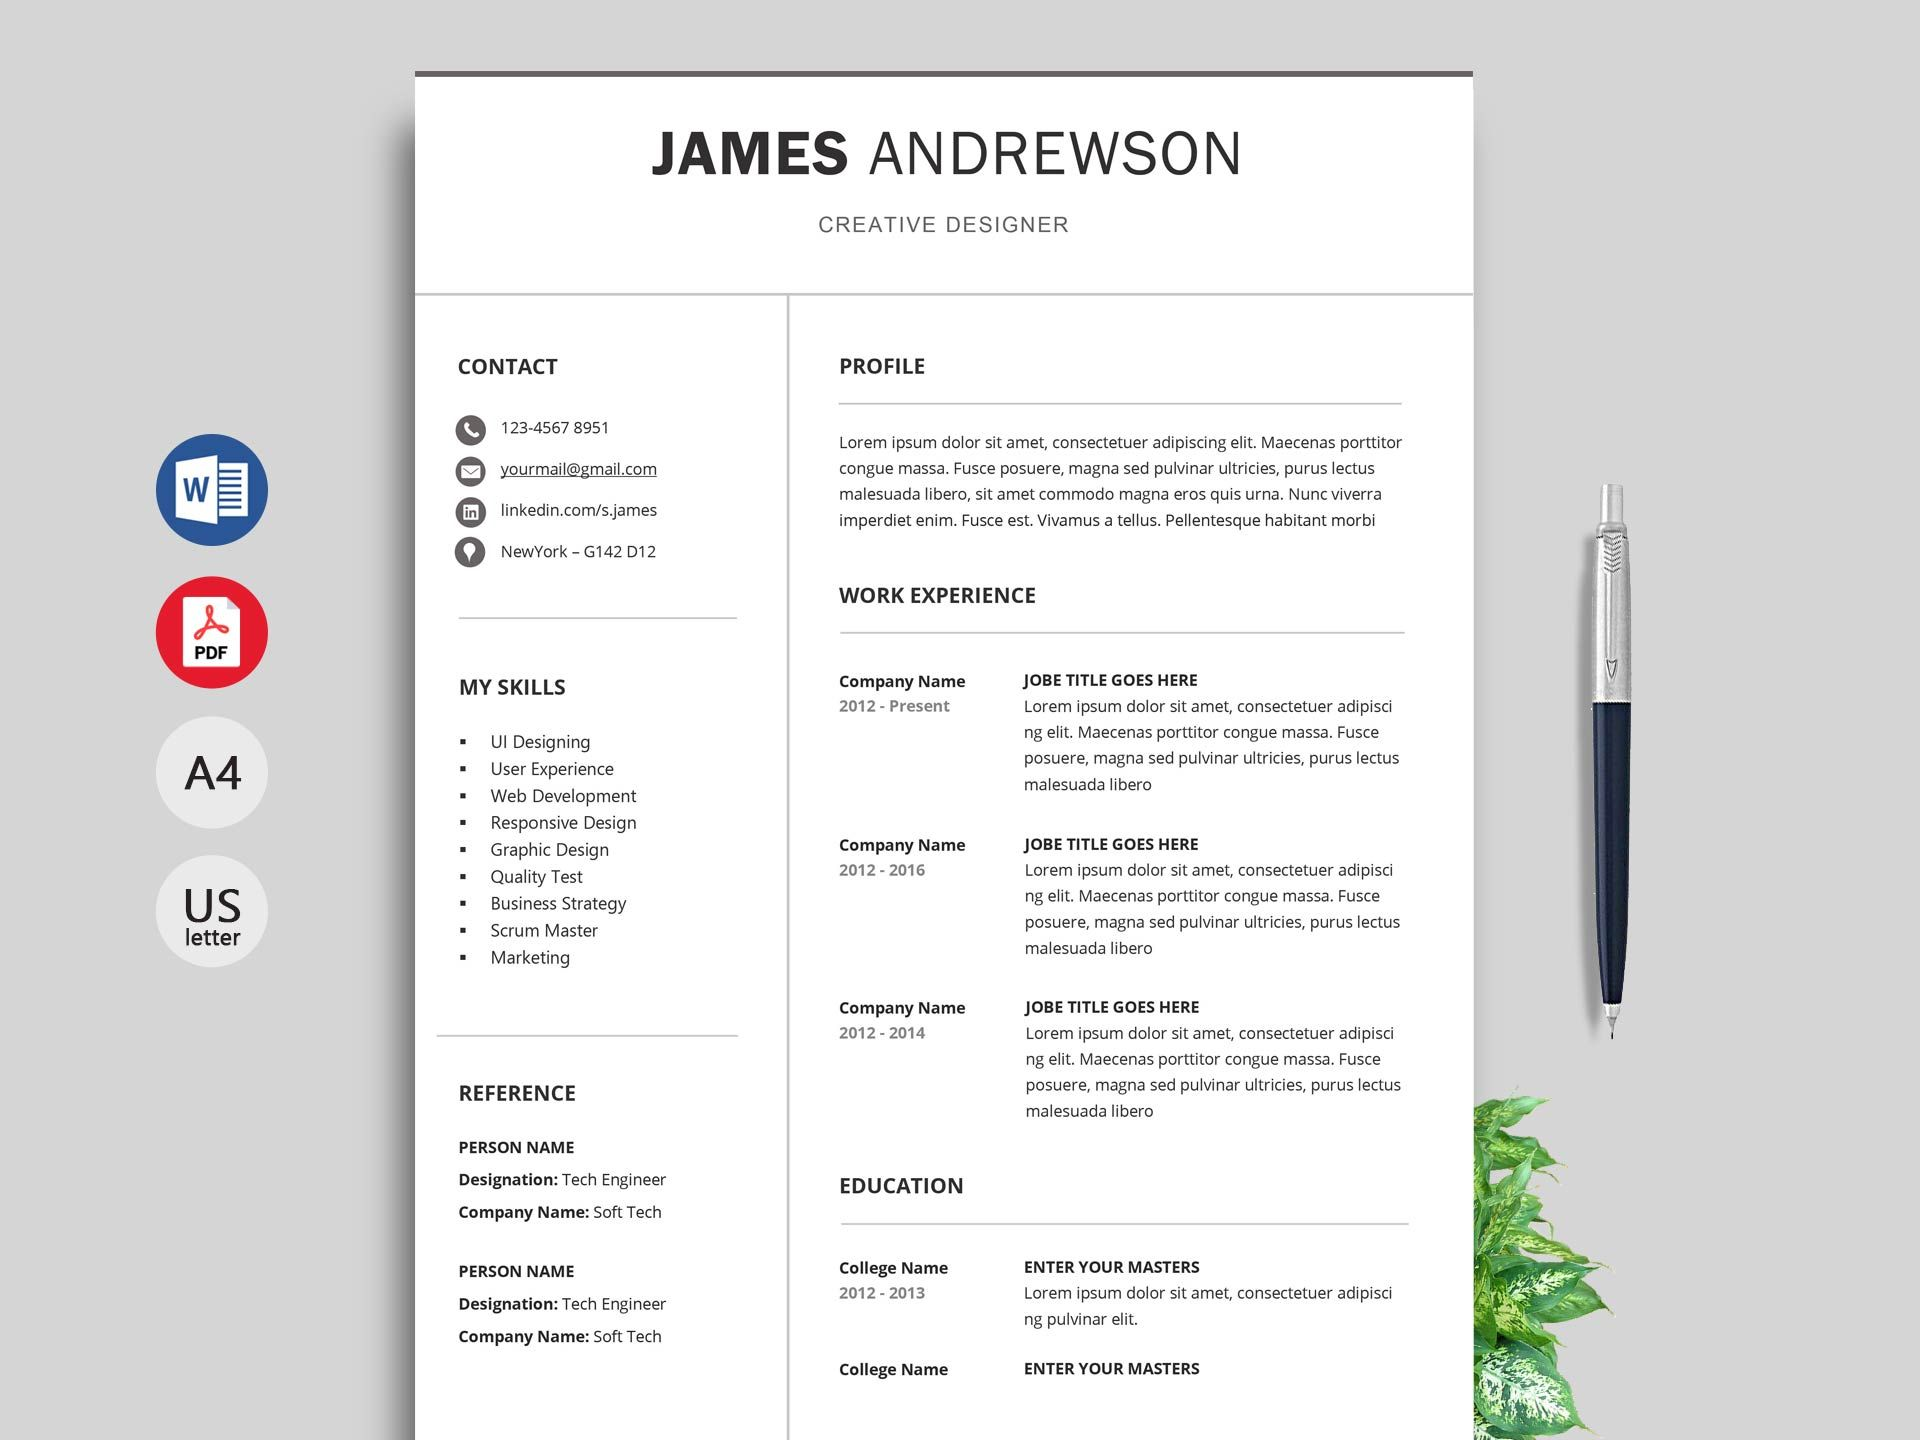 Free Simple Resume & Cv Templates Word Format 2020 in 2020